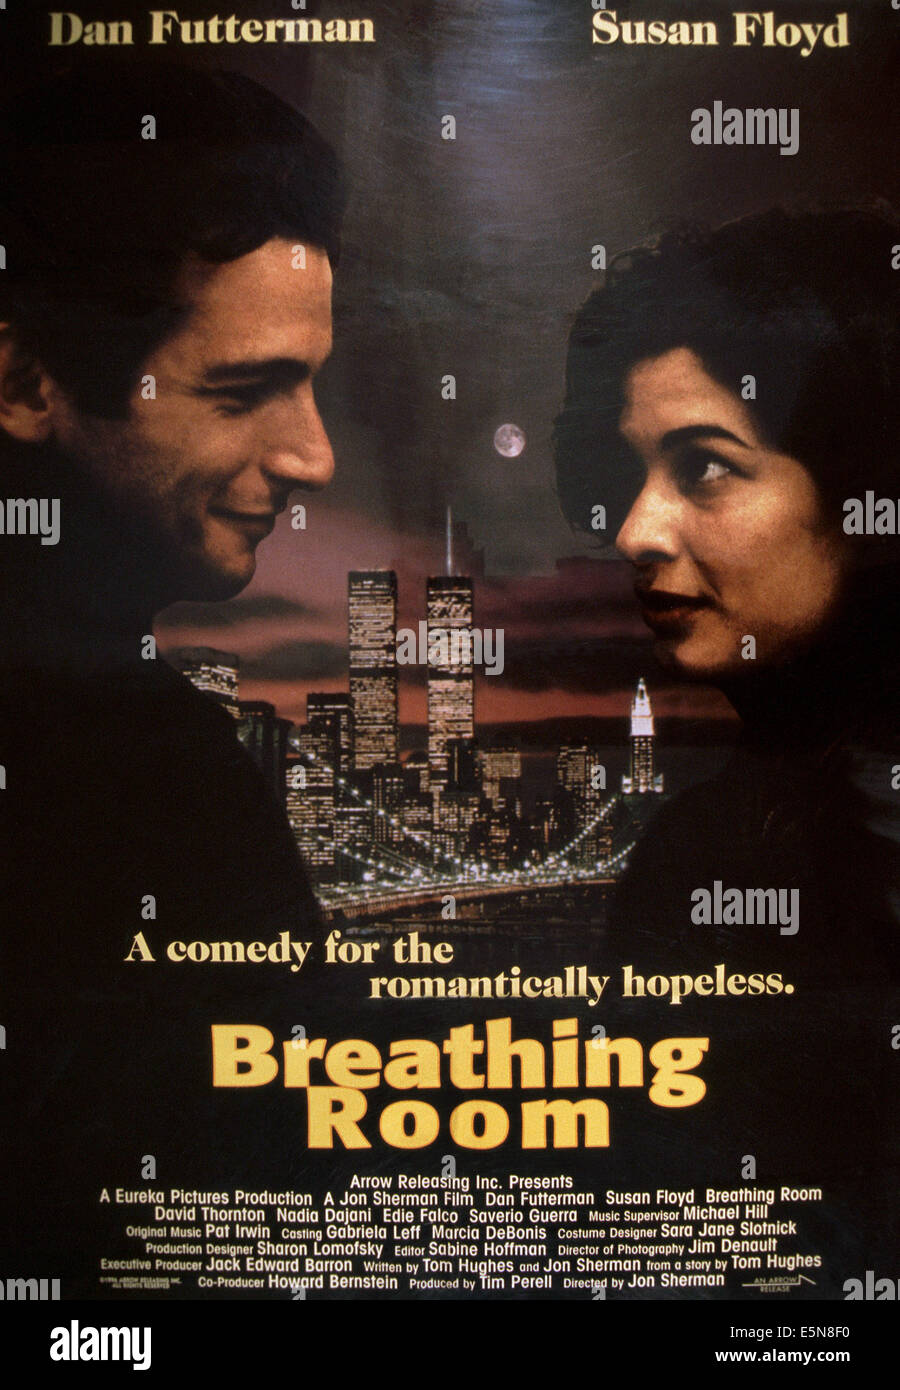 BREATHING ROOM, from left: Dan Futterman, Susan Floyd, 1996, © Arrow Releasing/courtesy Everett Collection - Stock Image